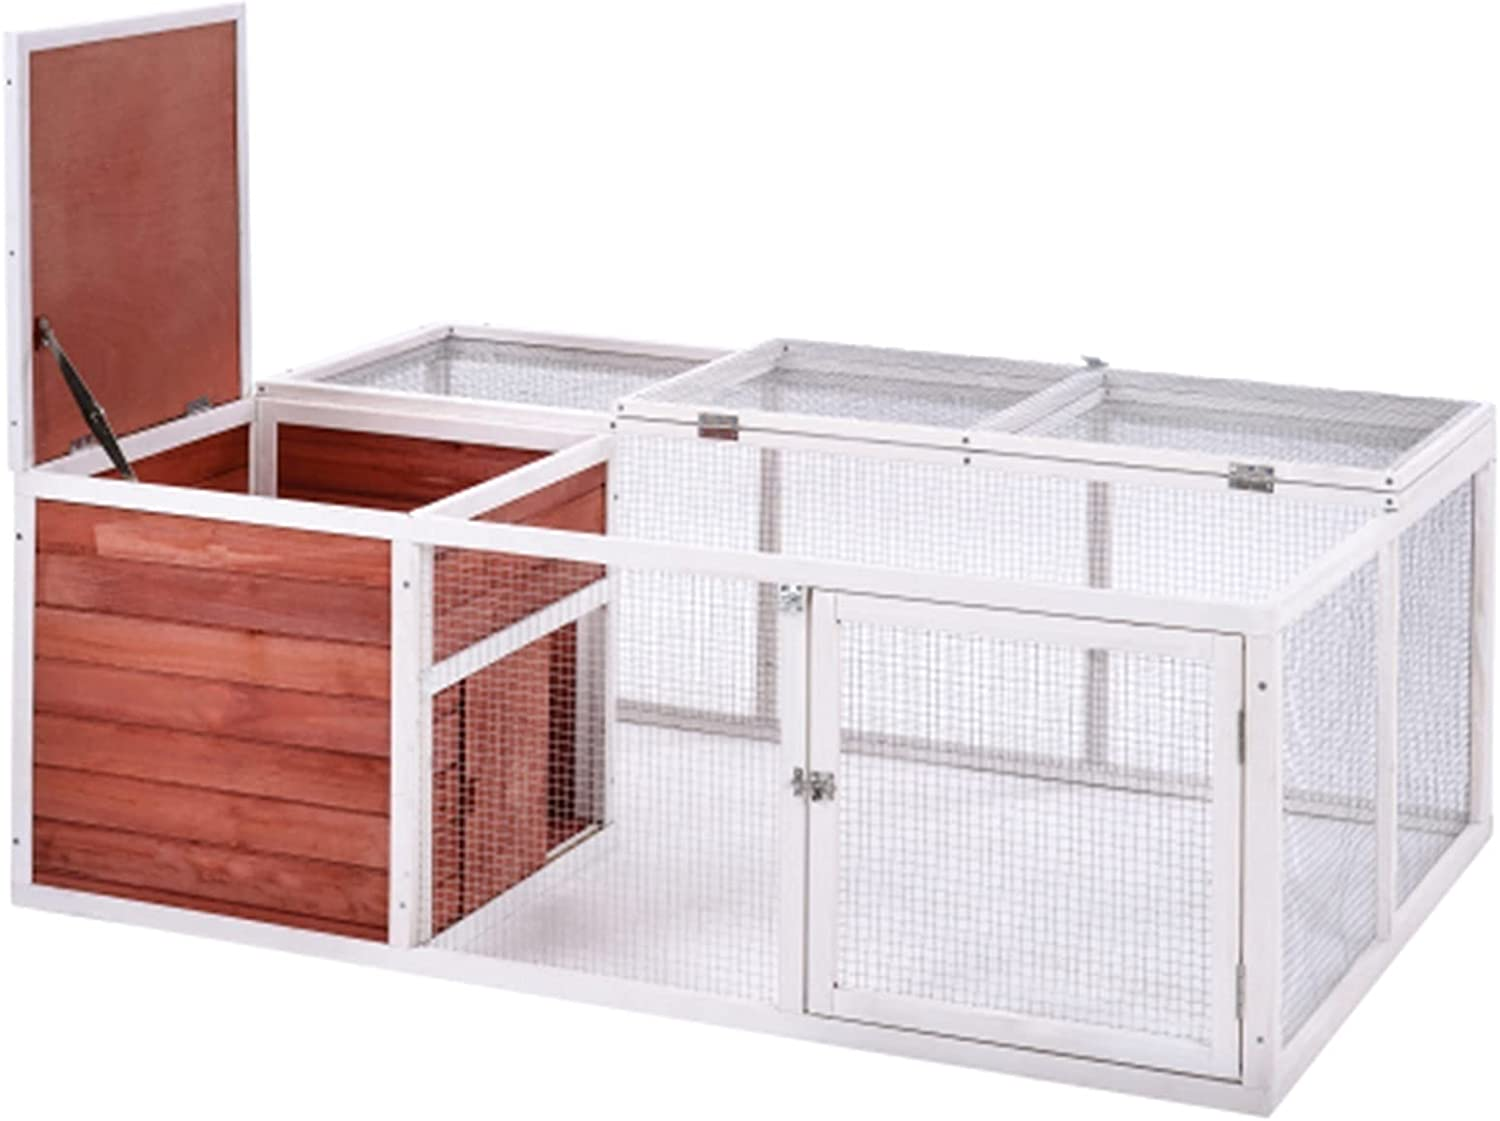 JITUO 61.8 Inches Rabbit Playpen Chicken Superlatite Pet An House Large discharge sale Coop Small